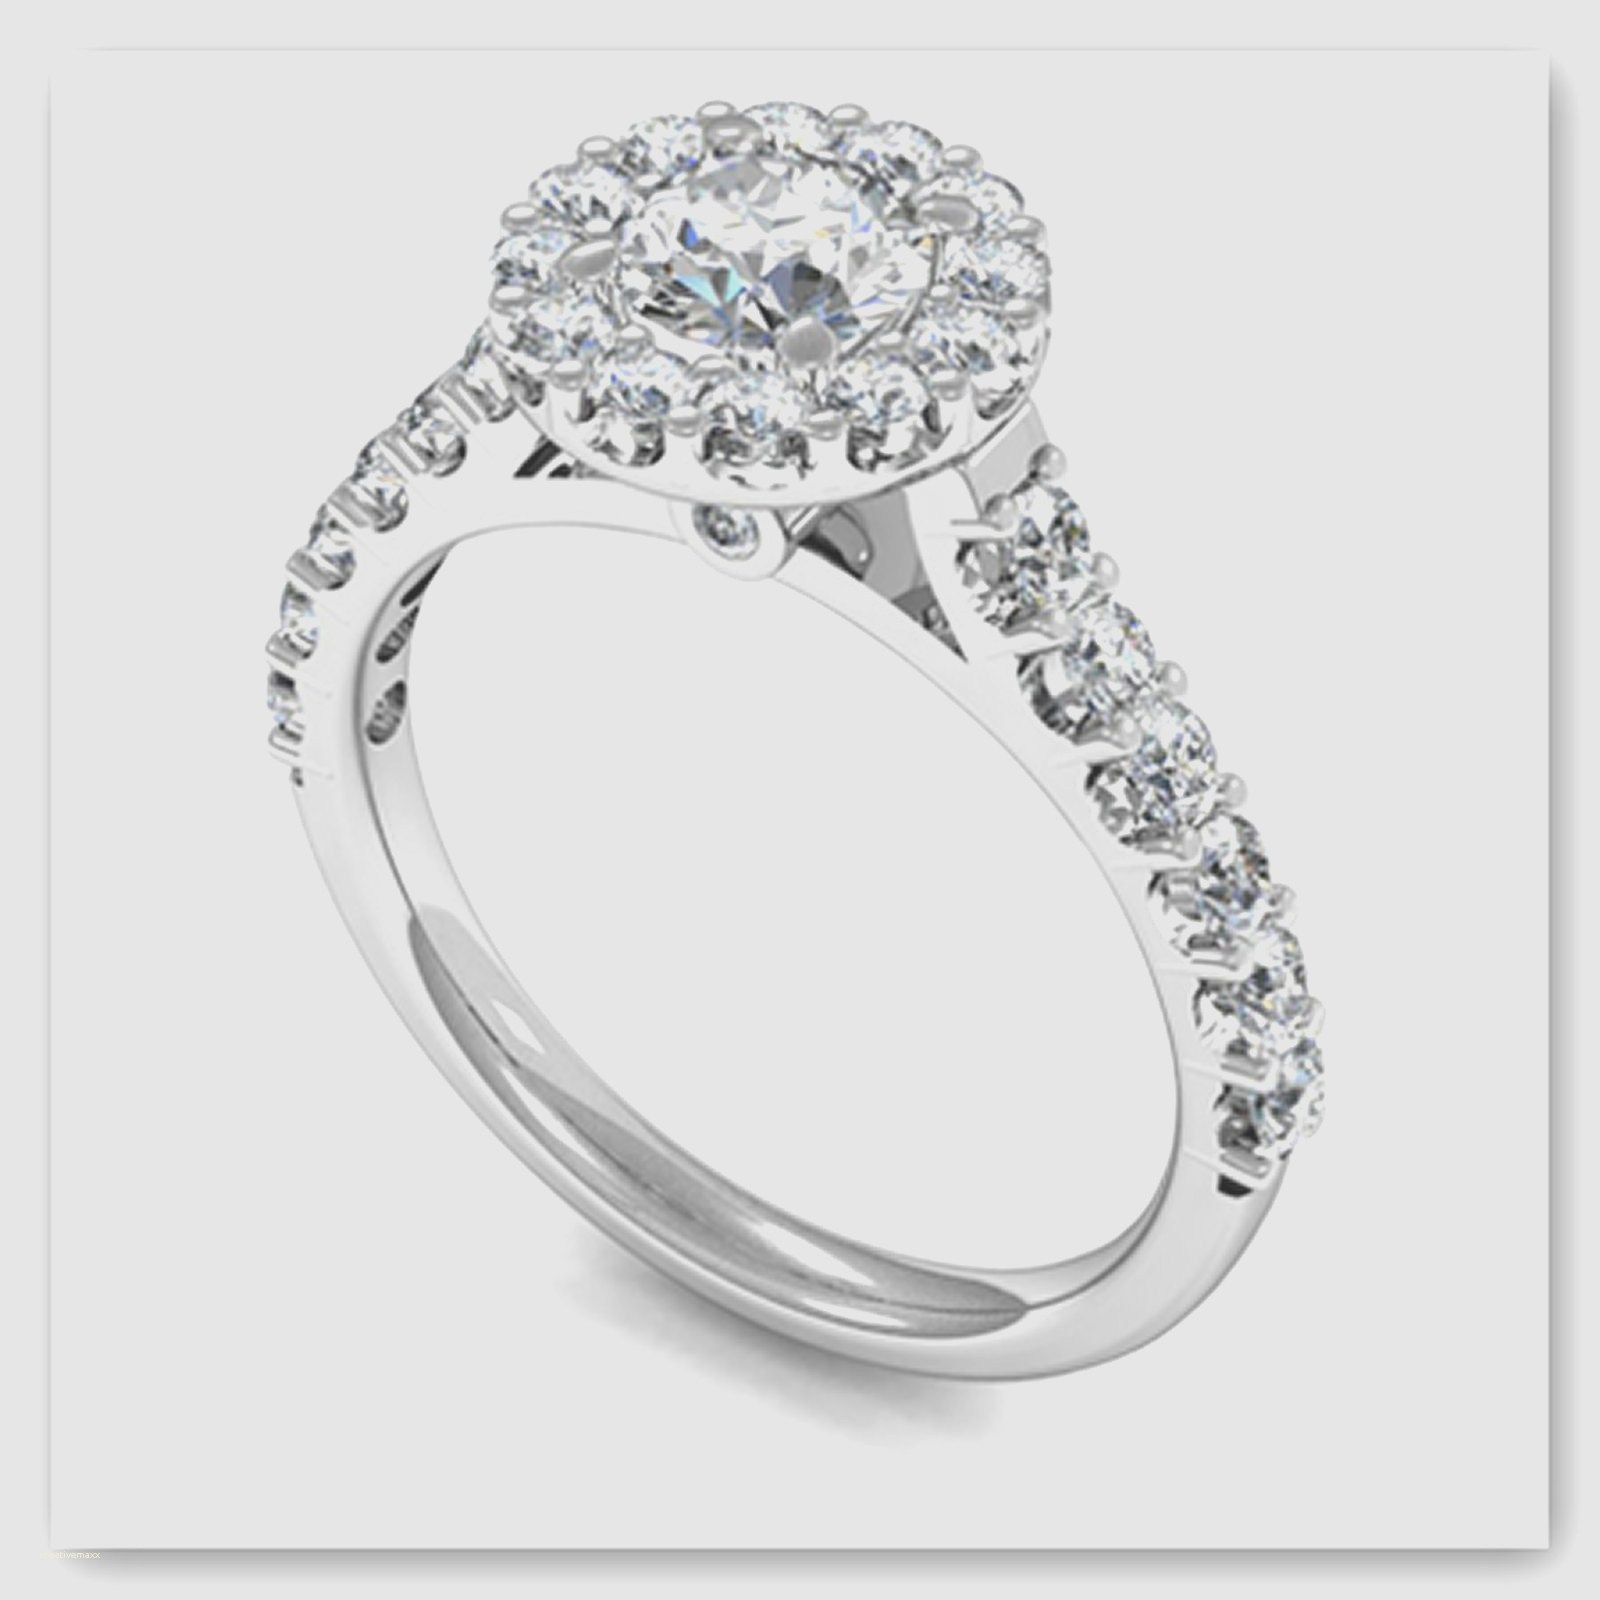 ring custon promise creative wedding of diamond flower huge fopivkf ct rings images engagement